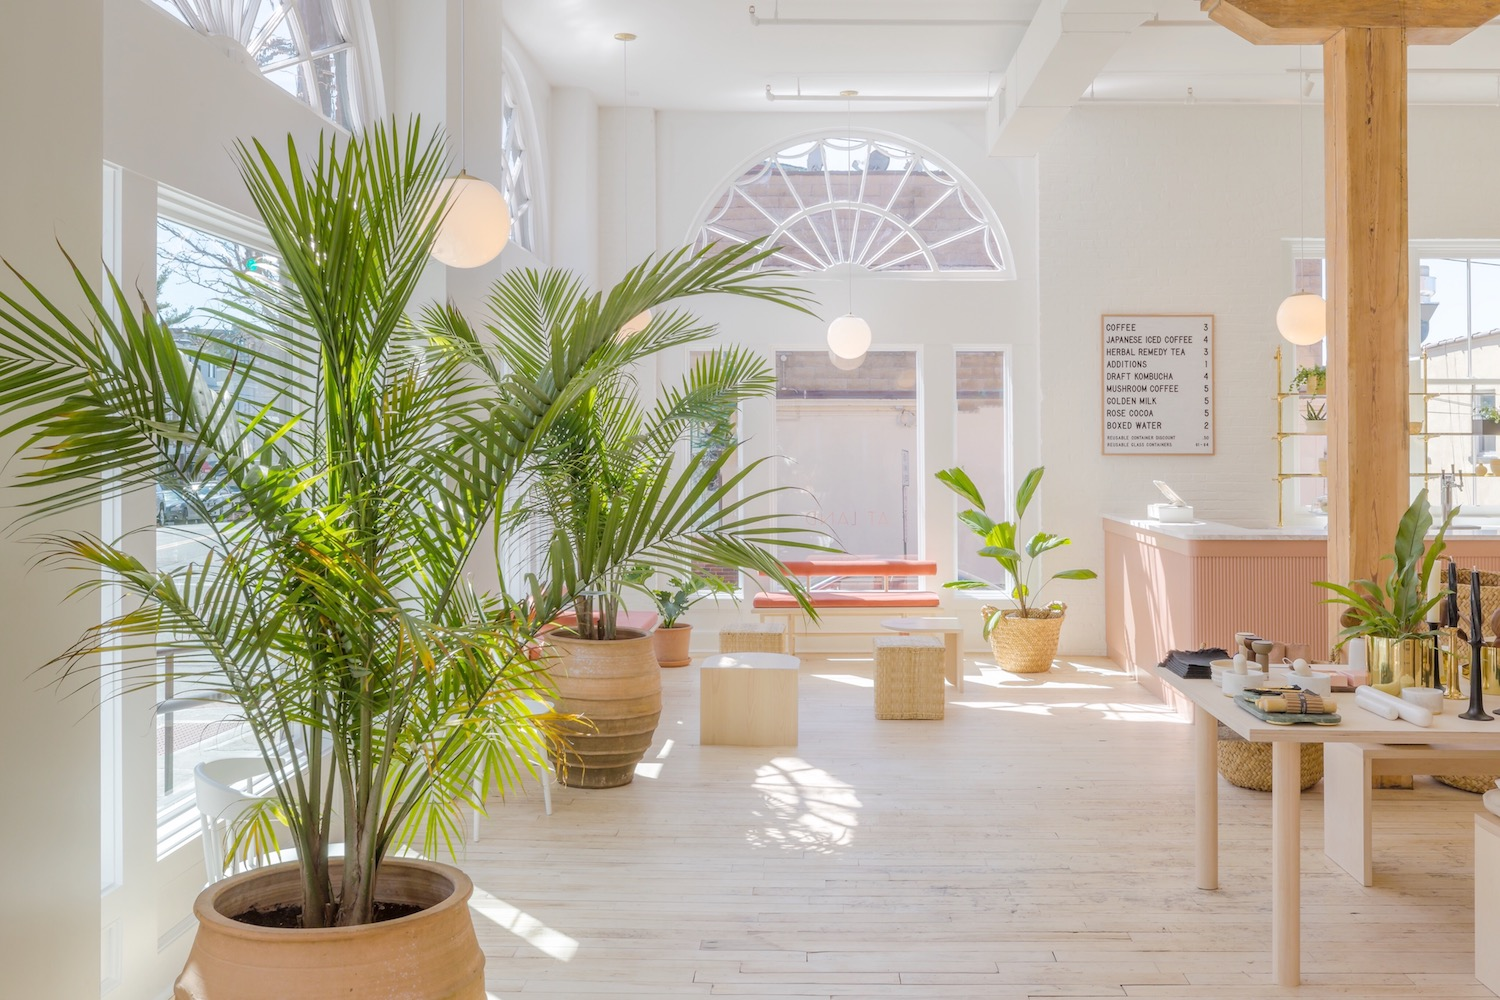 A Healthy Bar And Home Goods Store Is At Land In Dobbs Ferry